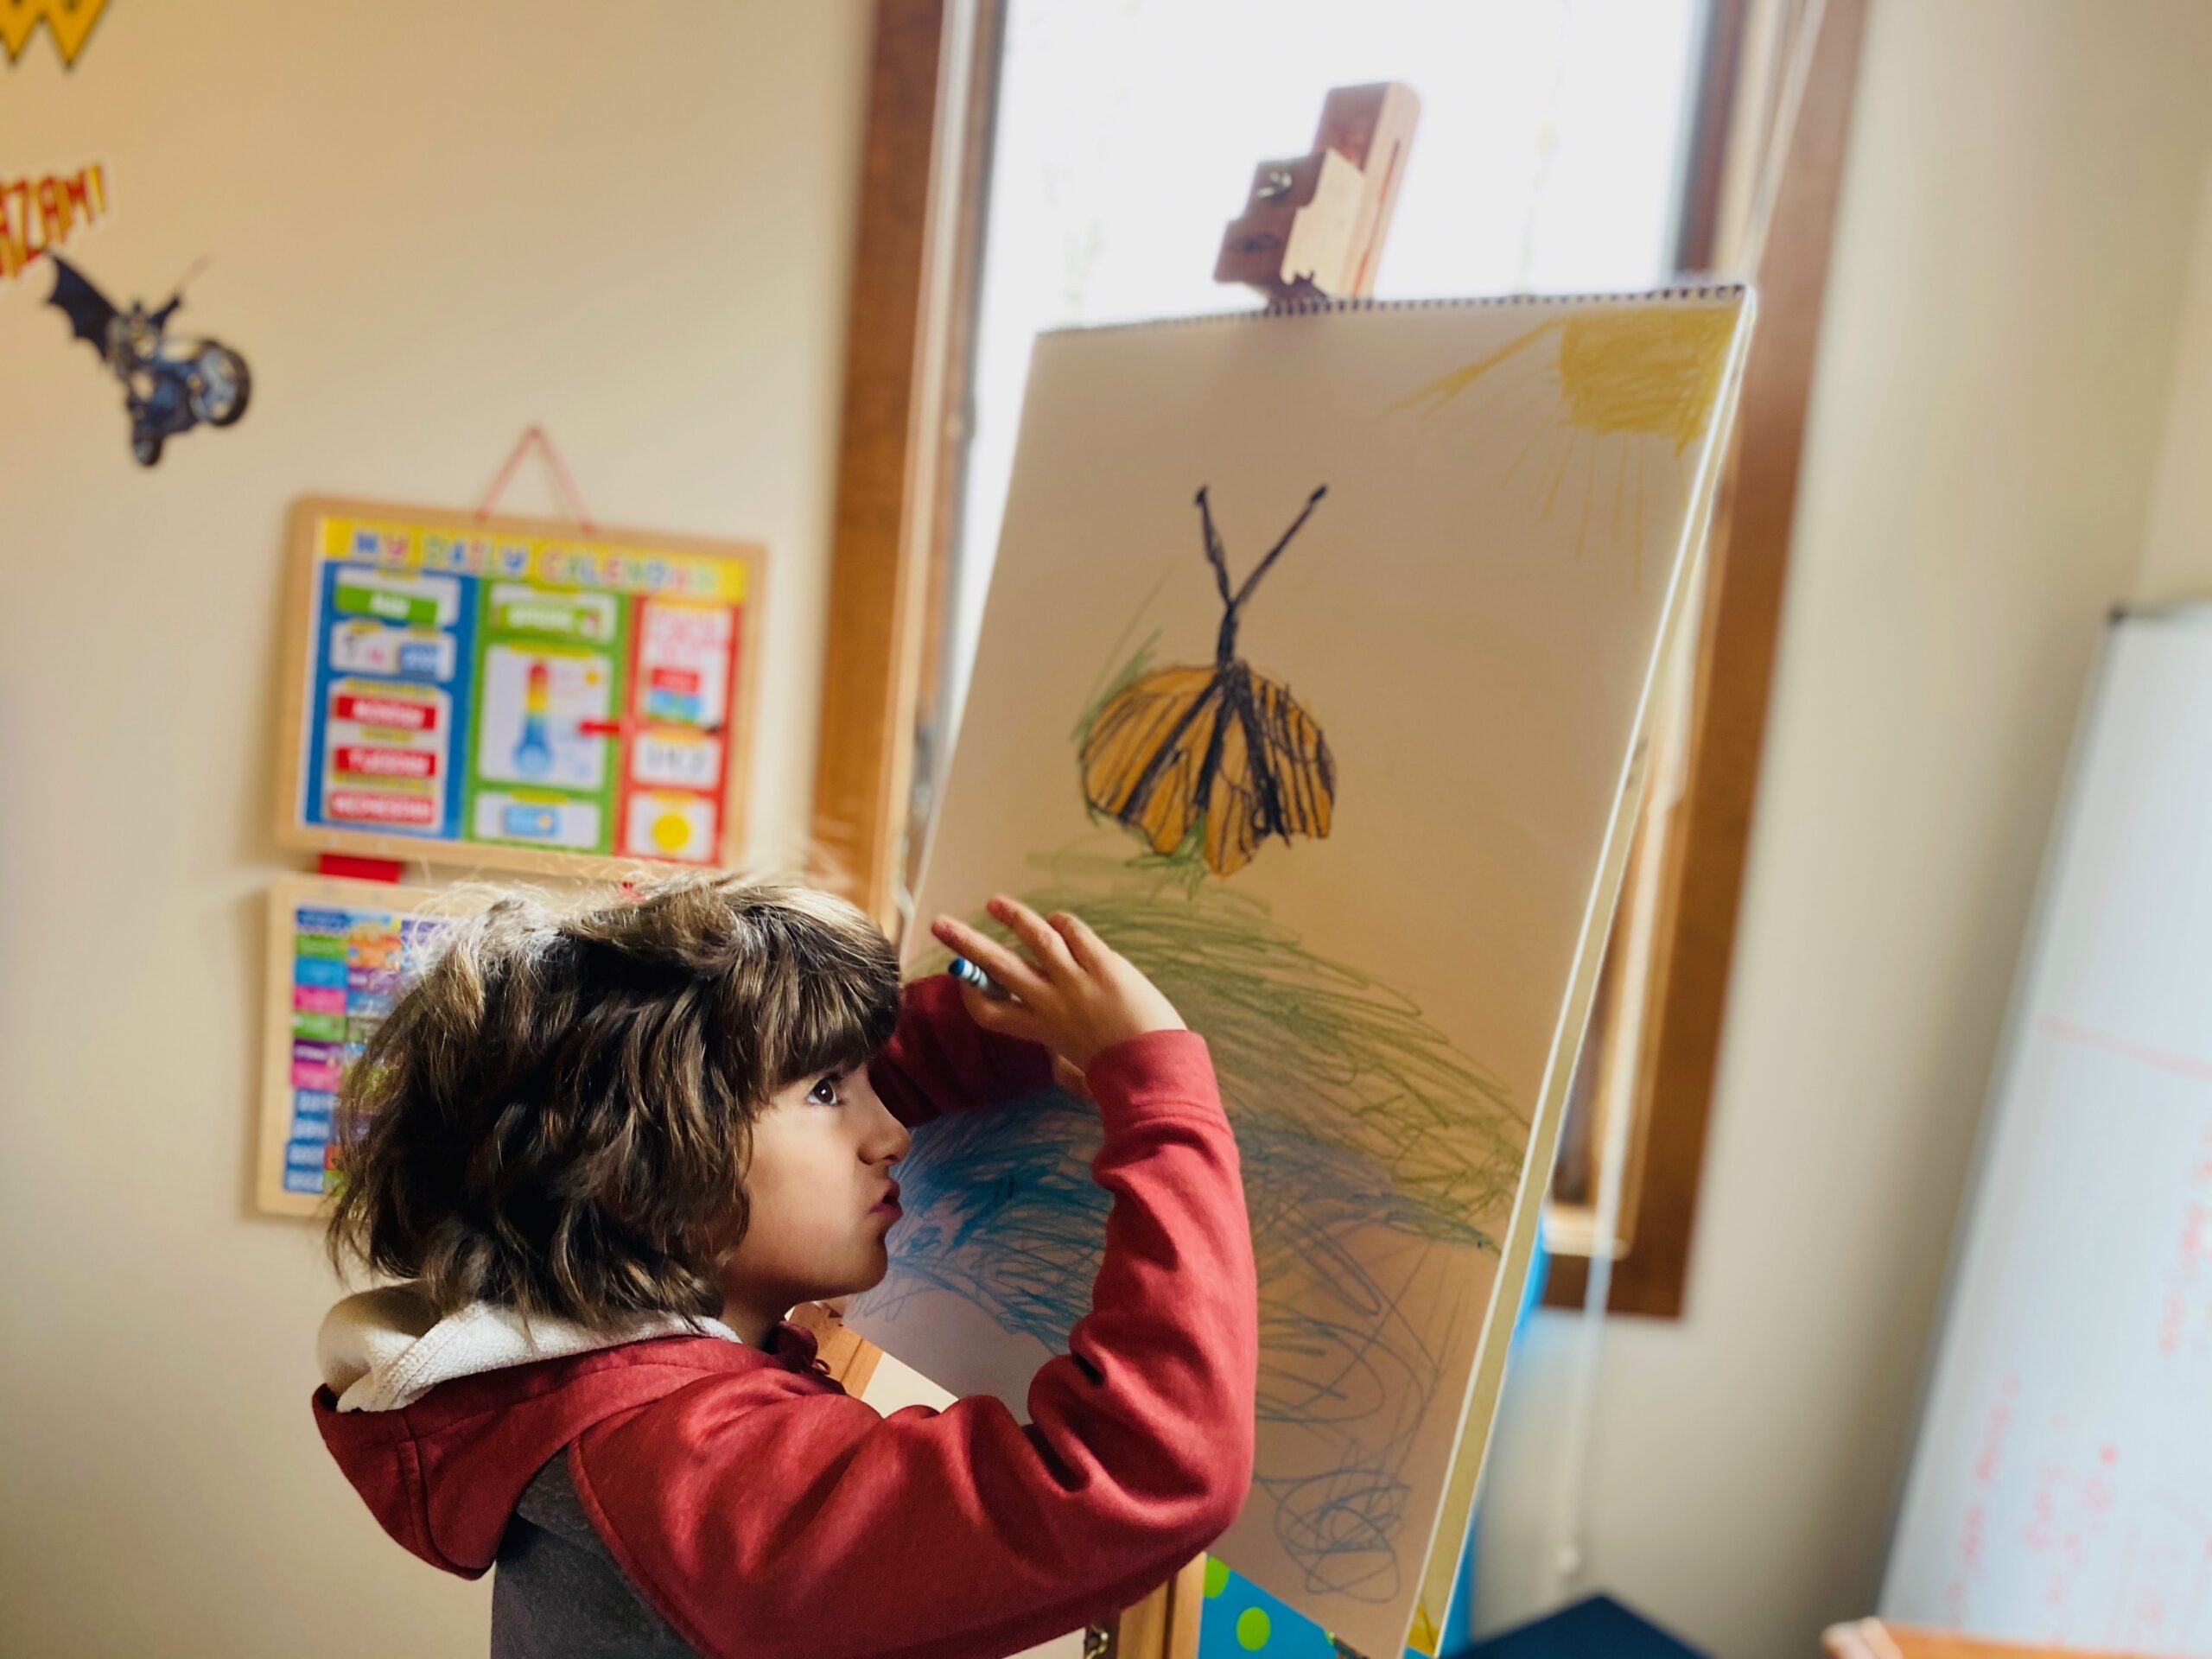 Adriana Letorney's son and his drawing of a butterfly during lockdown; she caught him imagining the butterfly flying free. [Photo courtesy of Adriana Letorney]